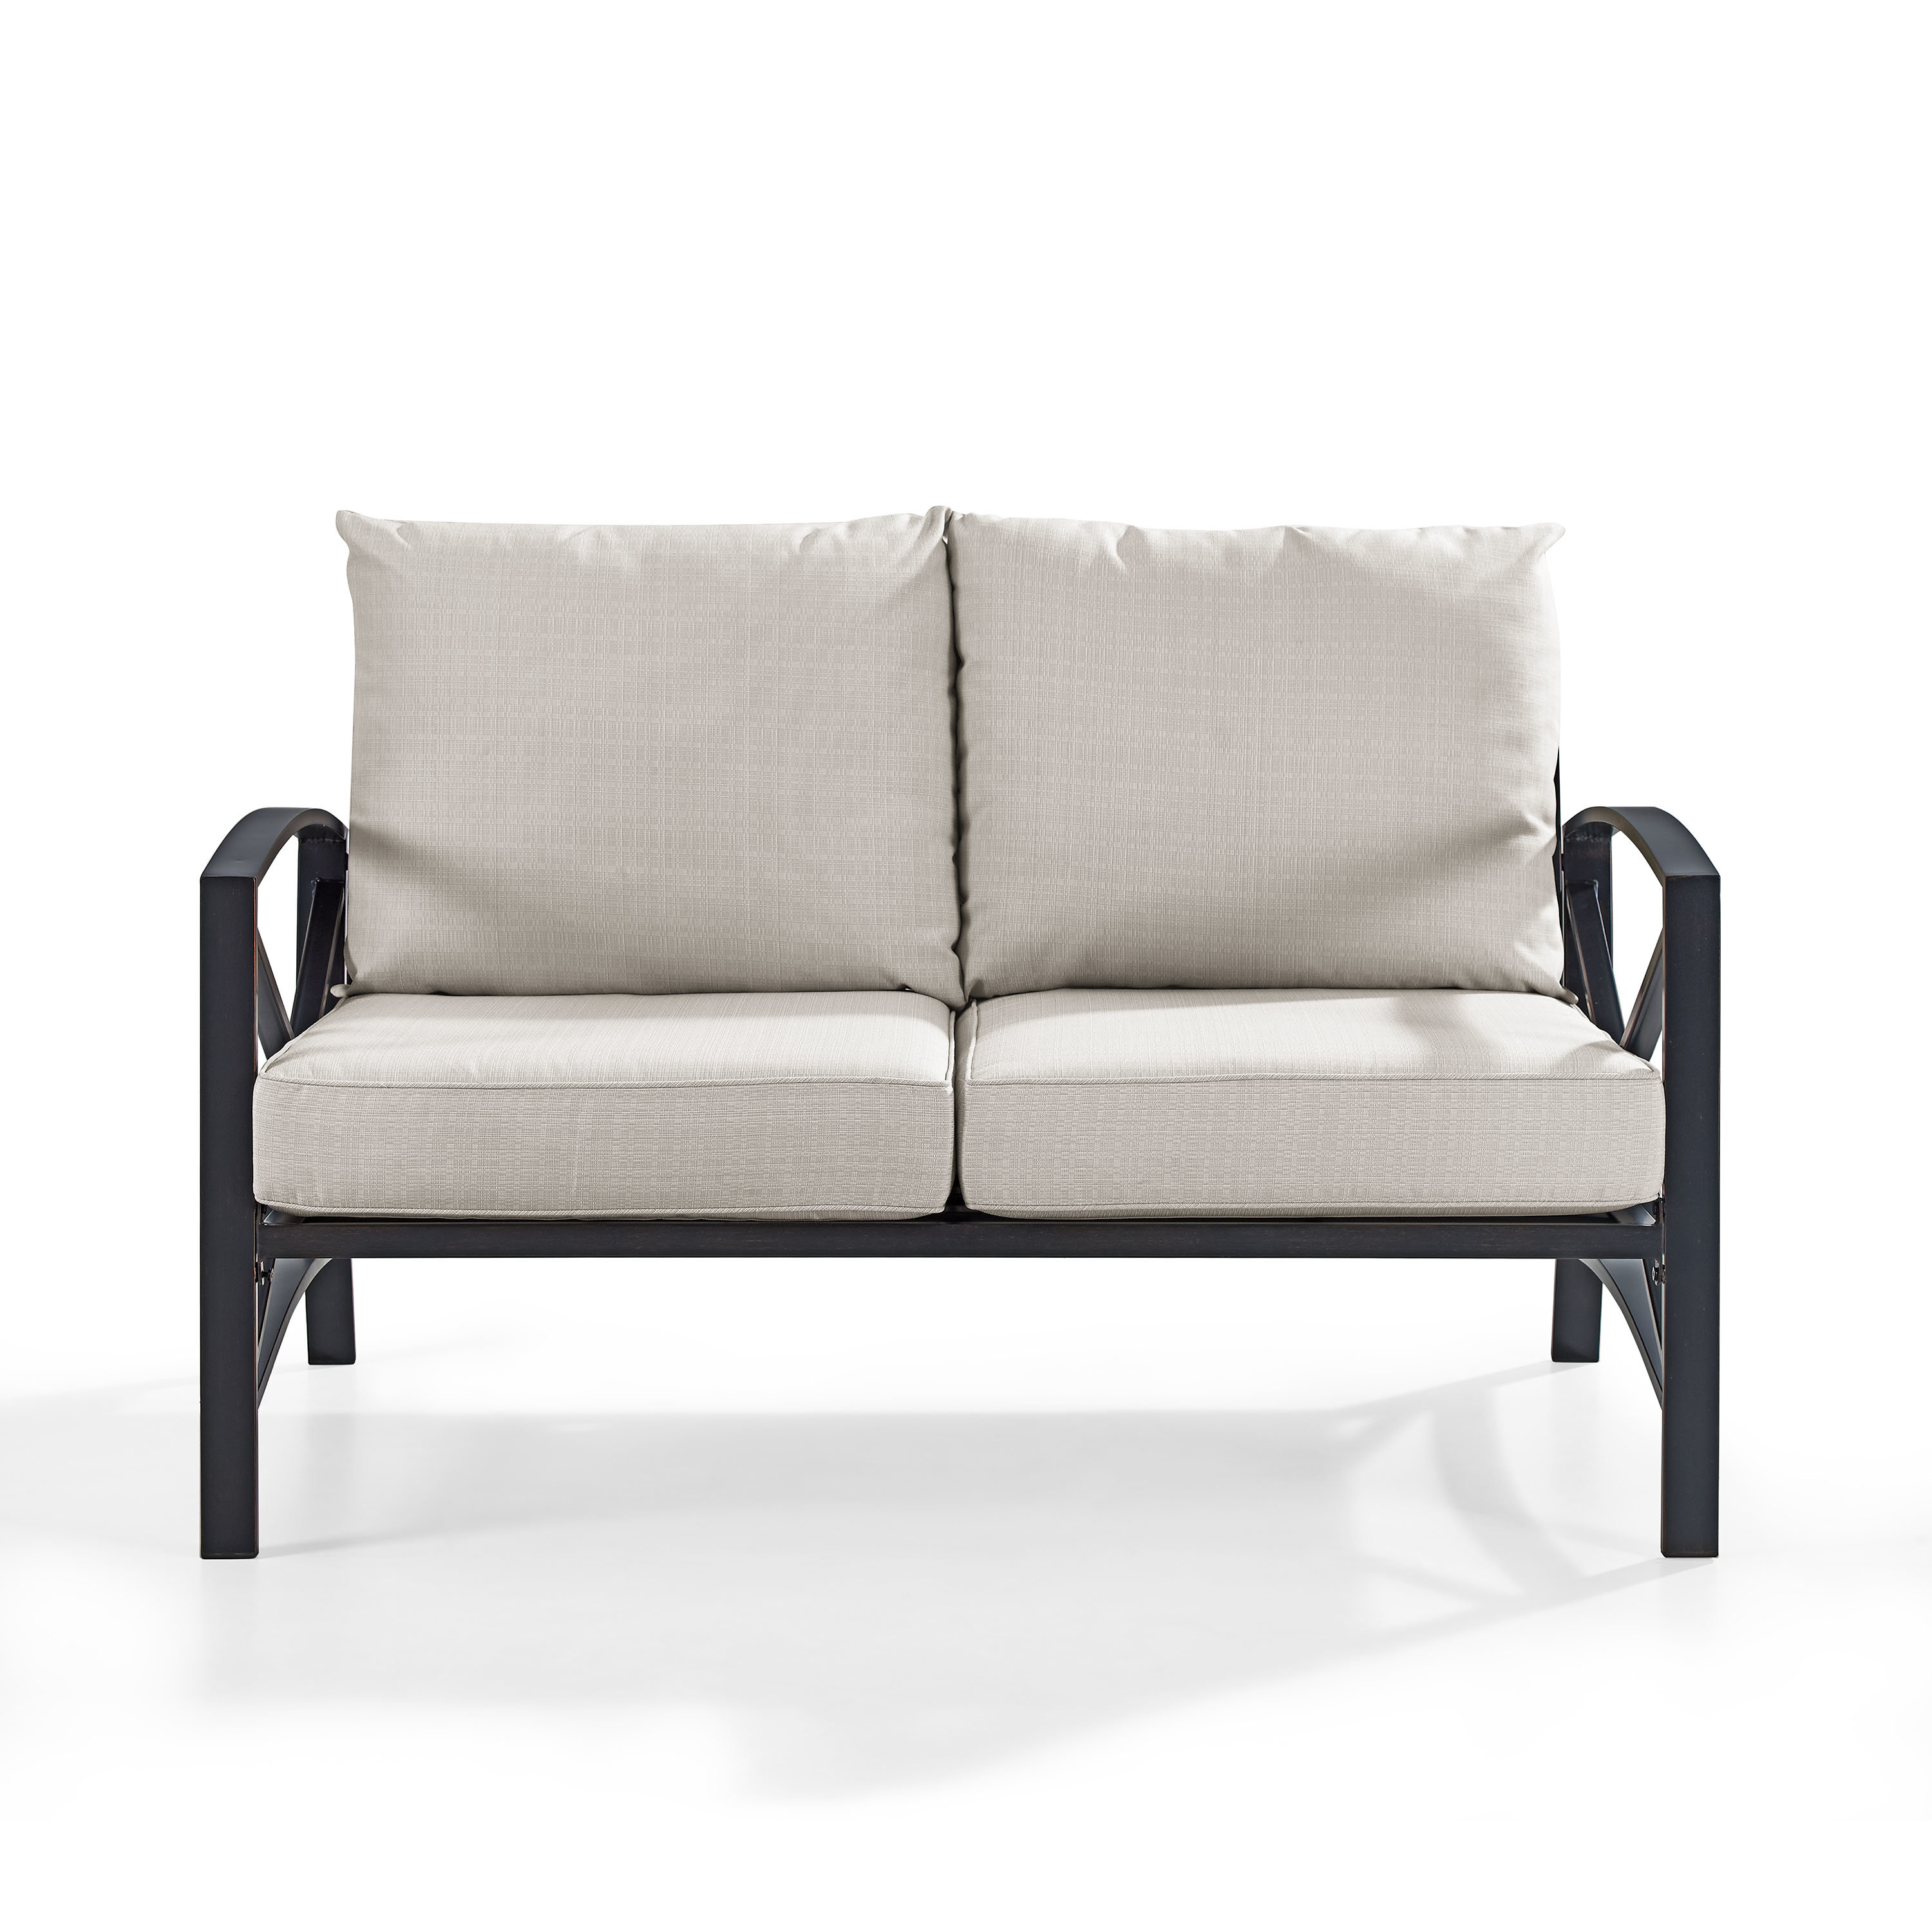 Bullock Outdoor Wooden Loveseats With Cushions In Most Up To Date Modern Grey Outdoor Loveseats (Gallery 13 of 20)